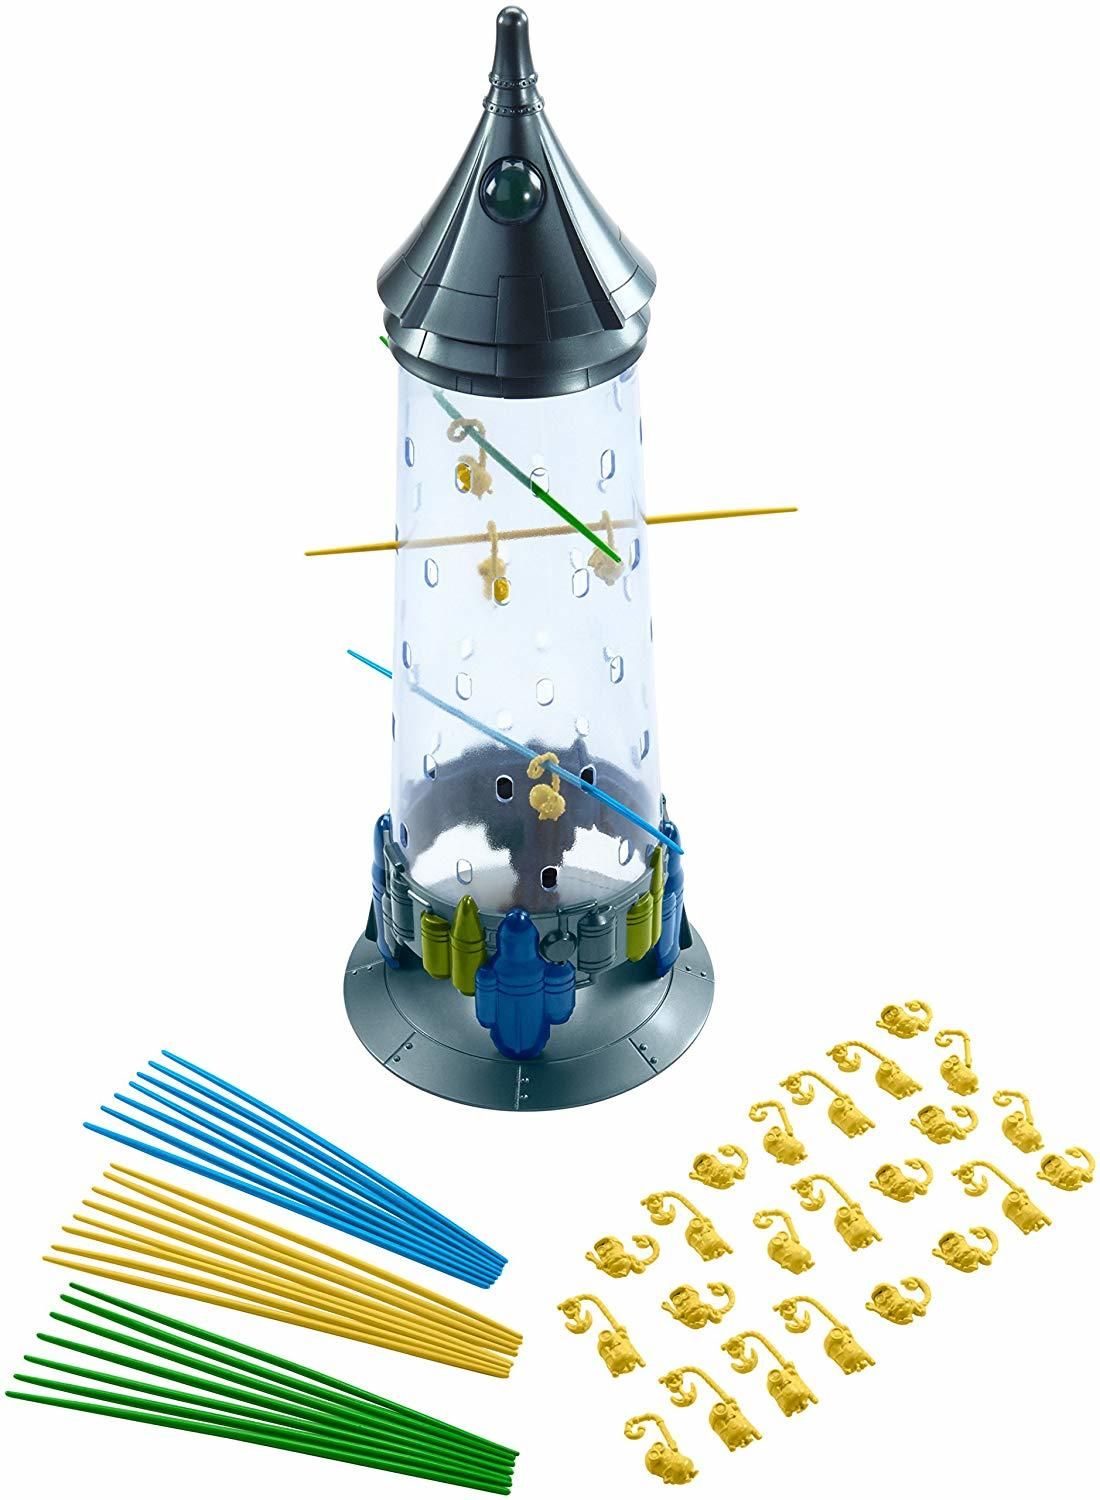 Despicable Me: Kerplunk - Minions Game image